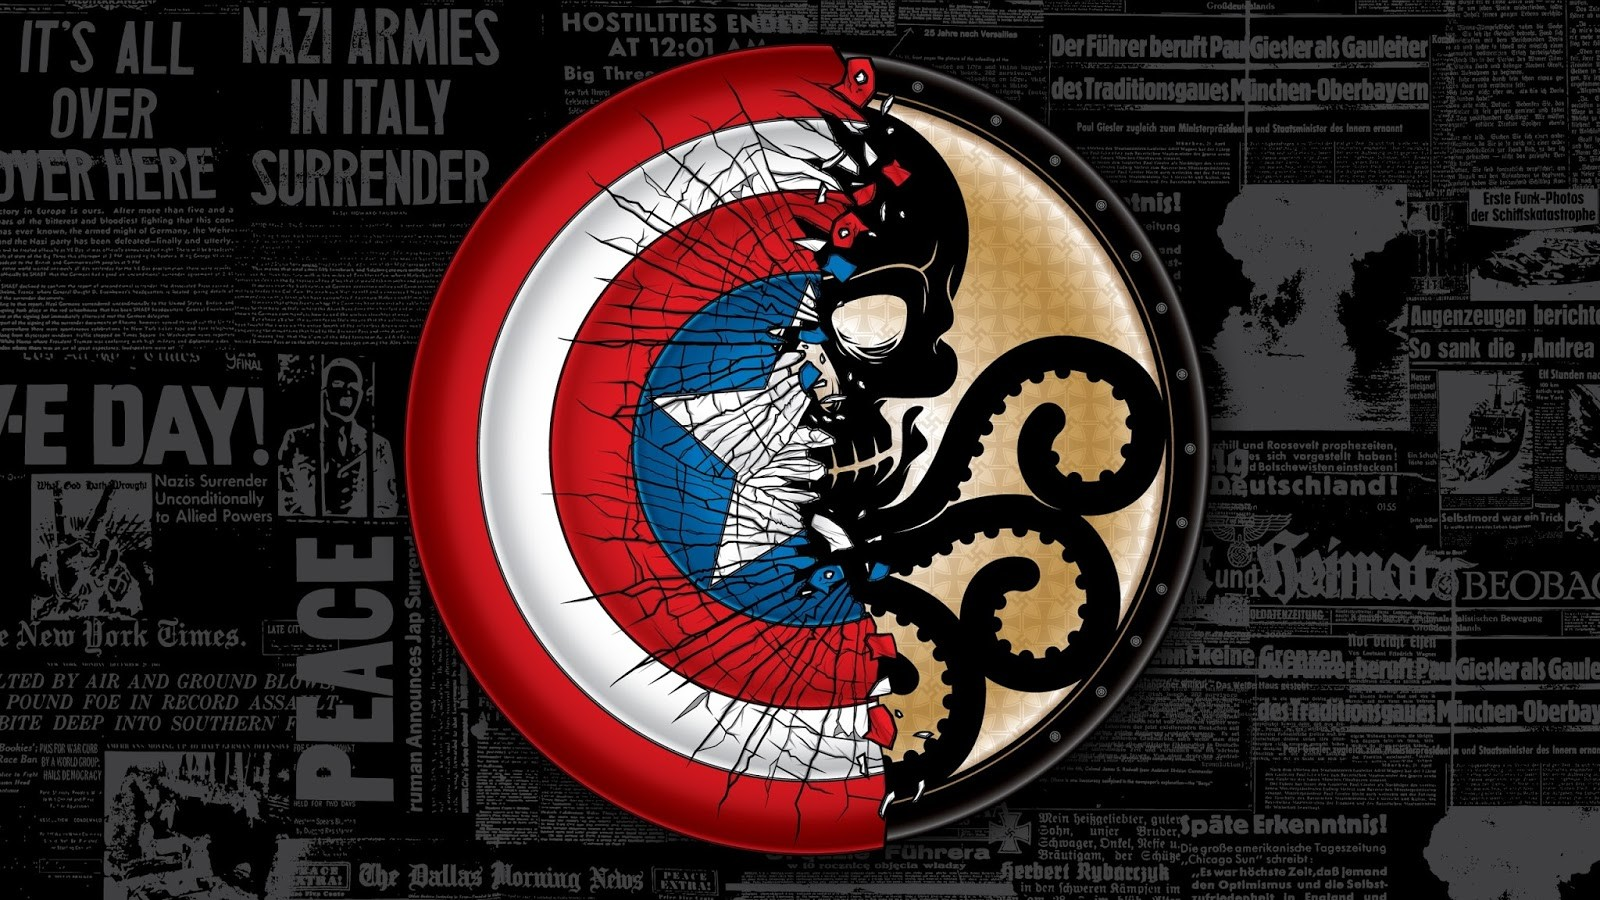 863851-artwork-captain-america-comics-crack-hydra-marvel-comics-journaux-red-skull-shields-superheroes-typography-world-war-ii (1)